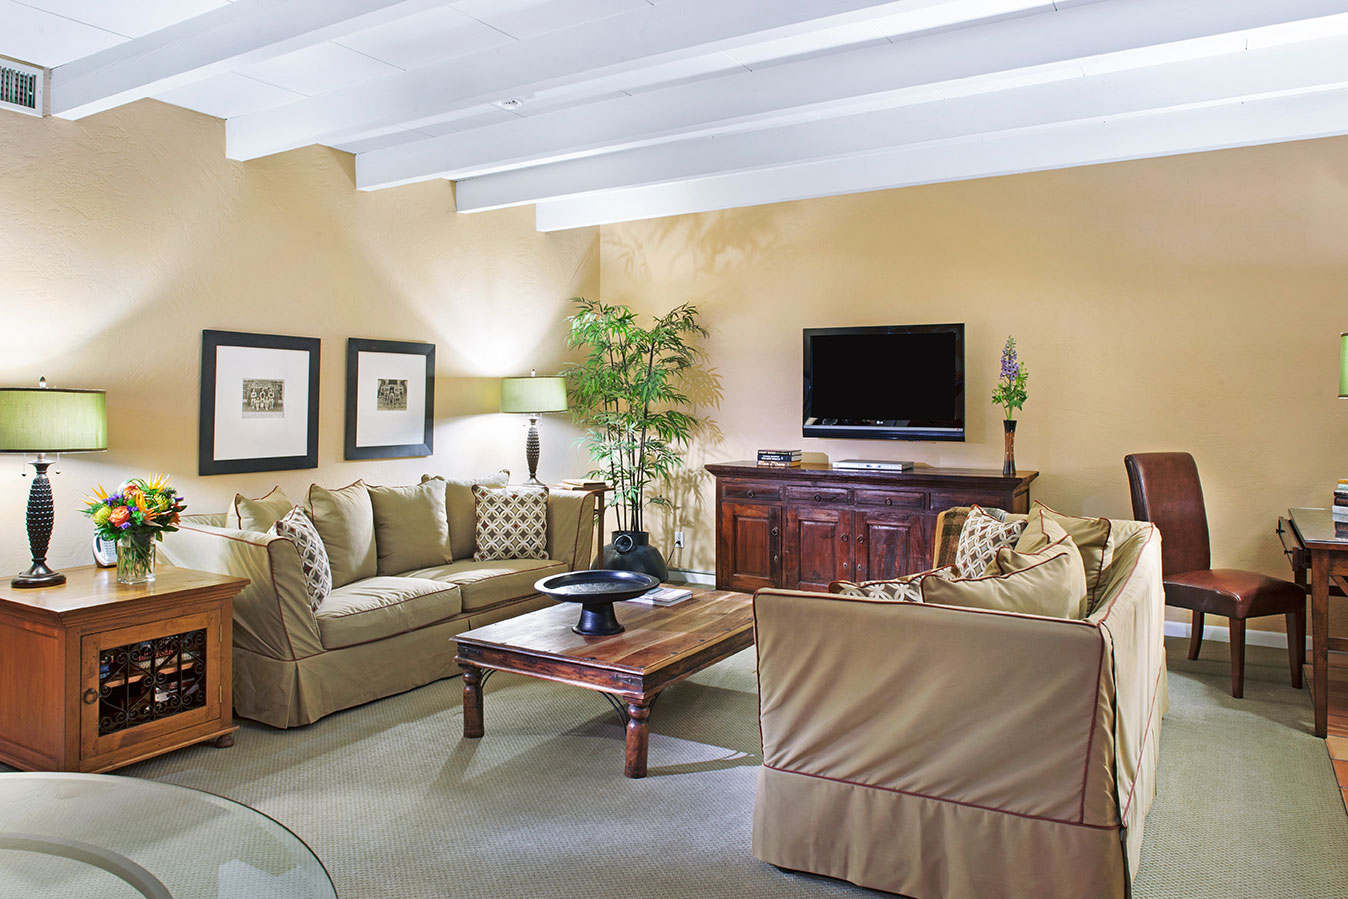 Grand Deluxe Suite living room at The Hacienda in Gay Palm Springs